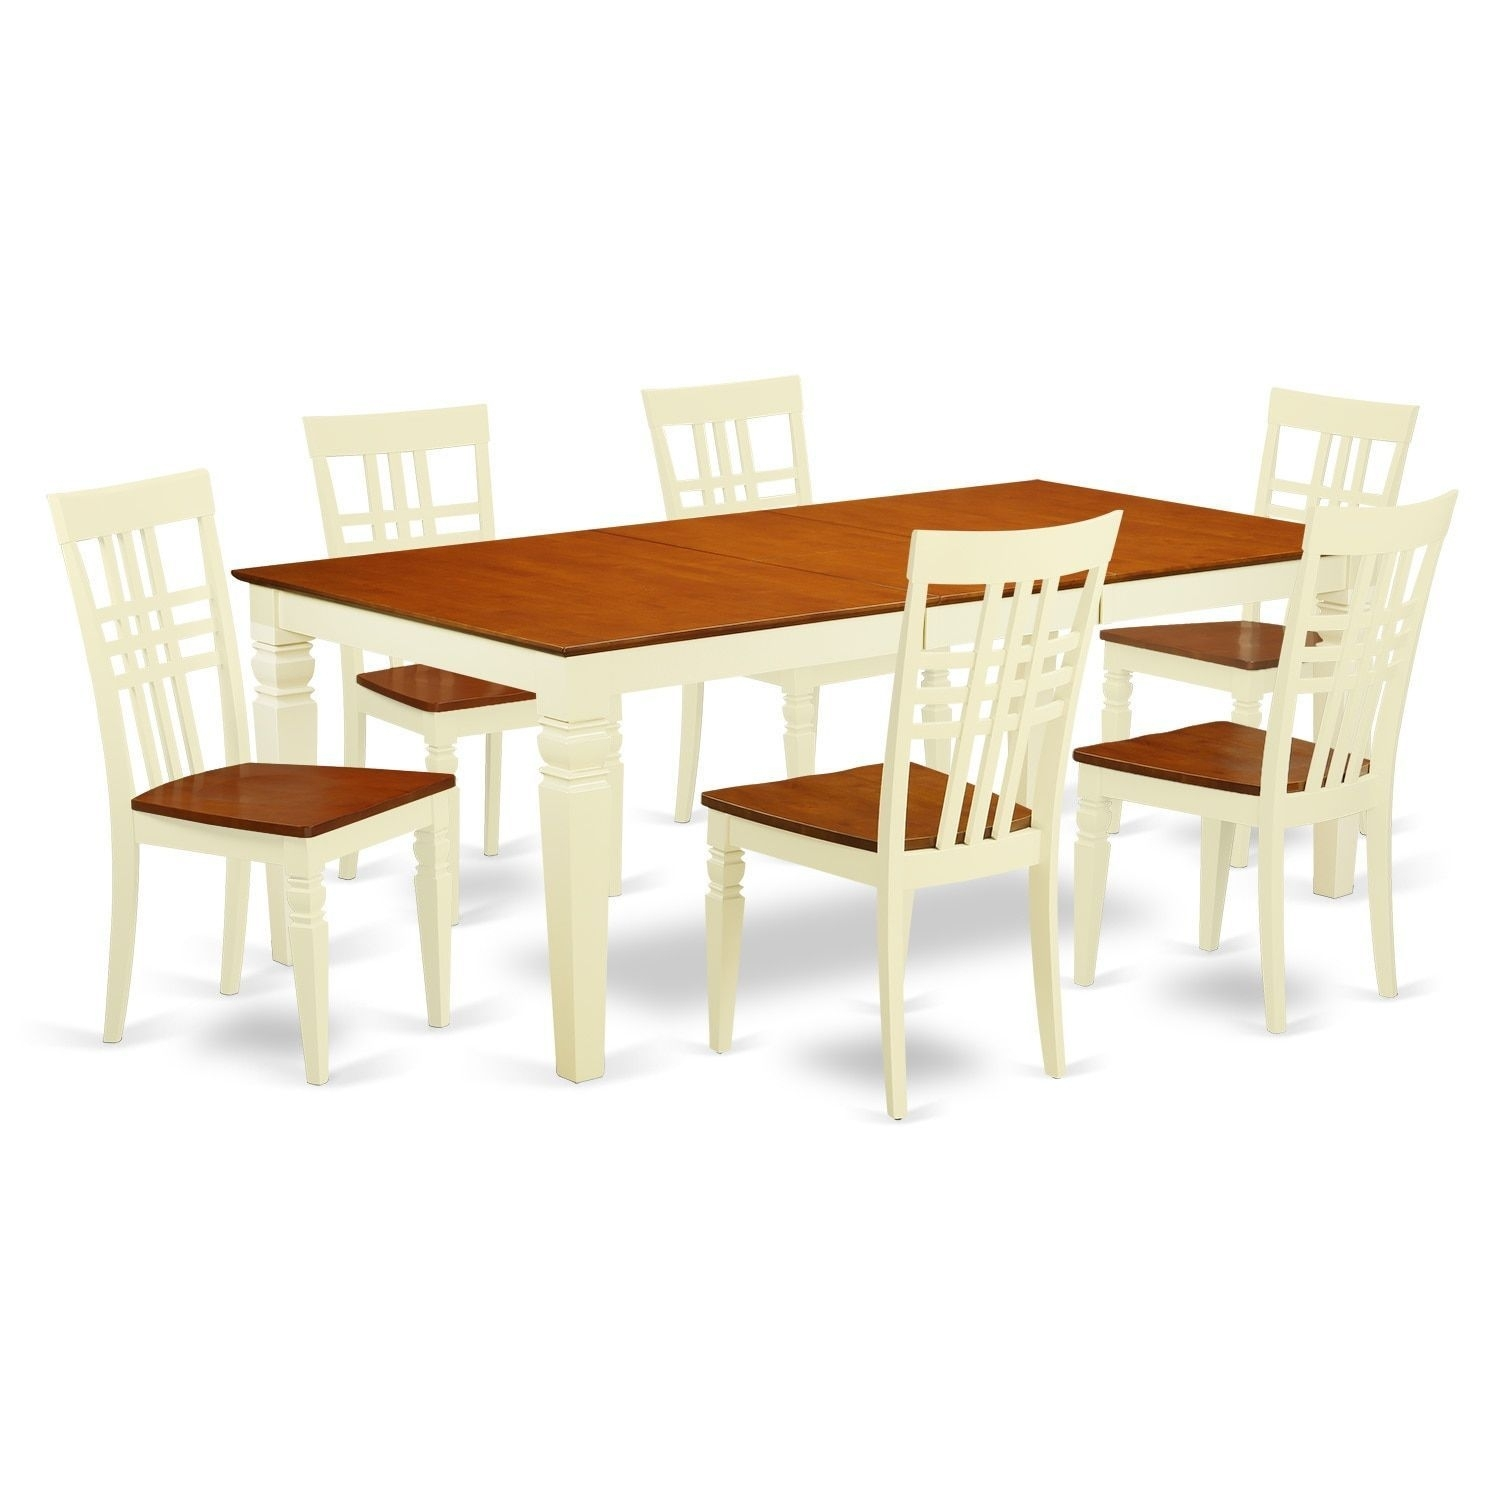 Logan Wood Extendable Dining Table And 6 Chairs Set (Buttermilk Intended For Recent Logan 6 Piece Dining Sets (Image 9 of 20)